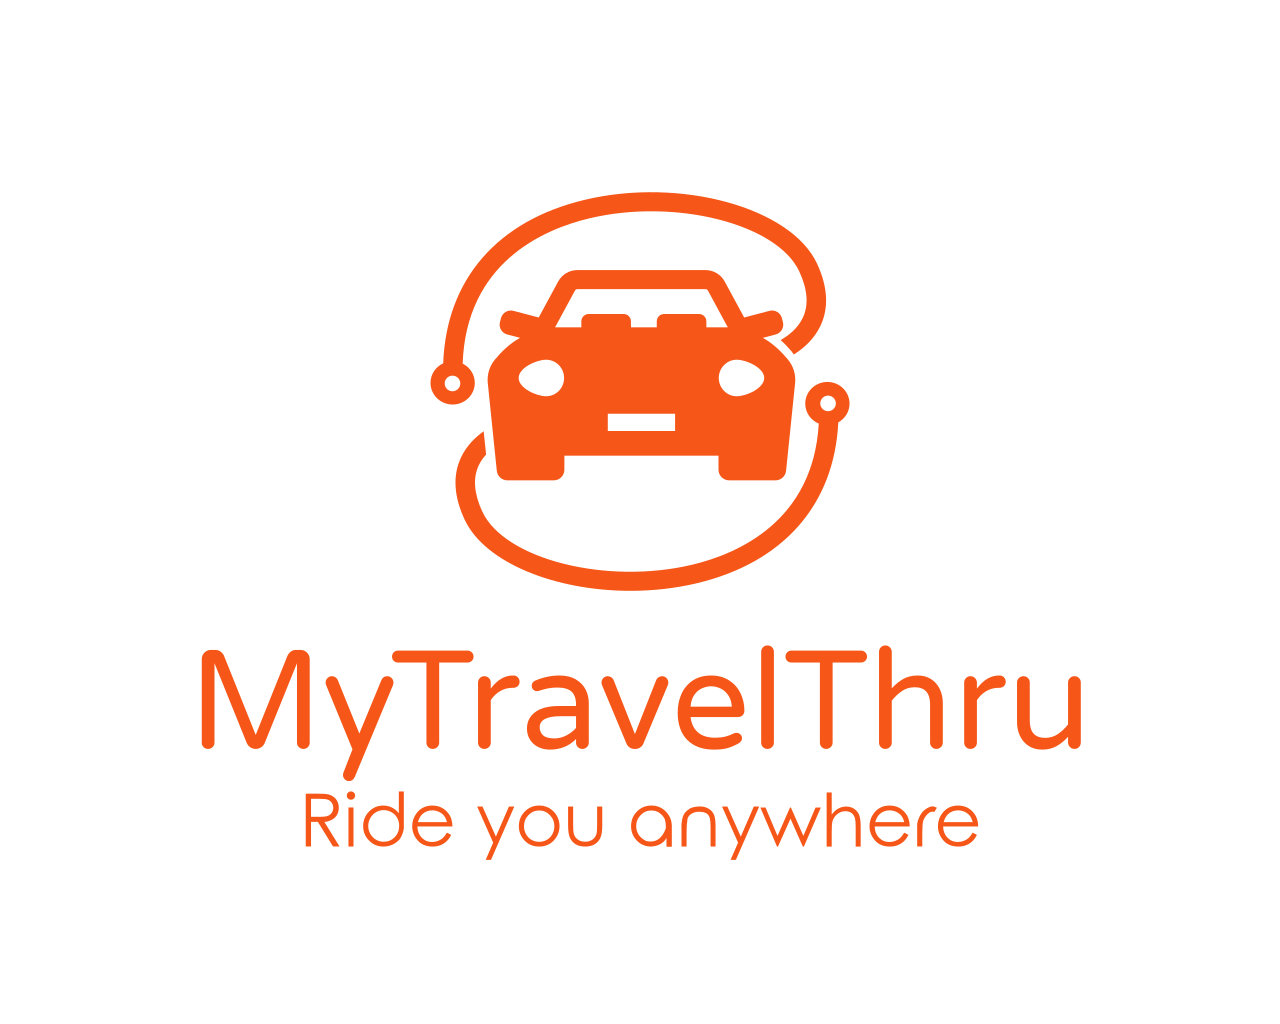 MyTravelThru Offers Efficient Transport Aggregator Services for Both Home Customers in Vietnam and Globally